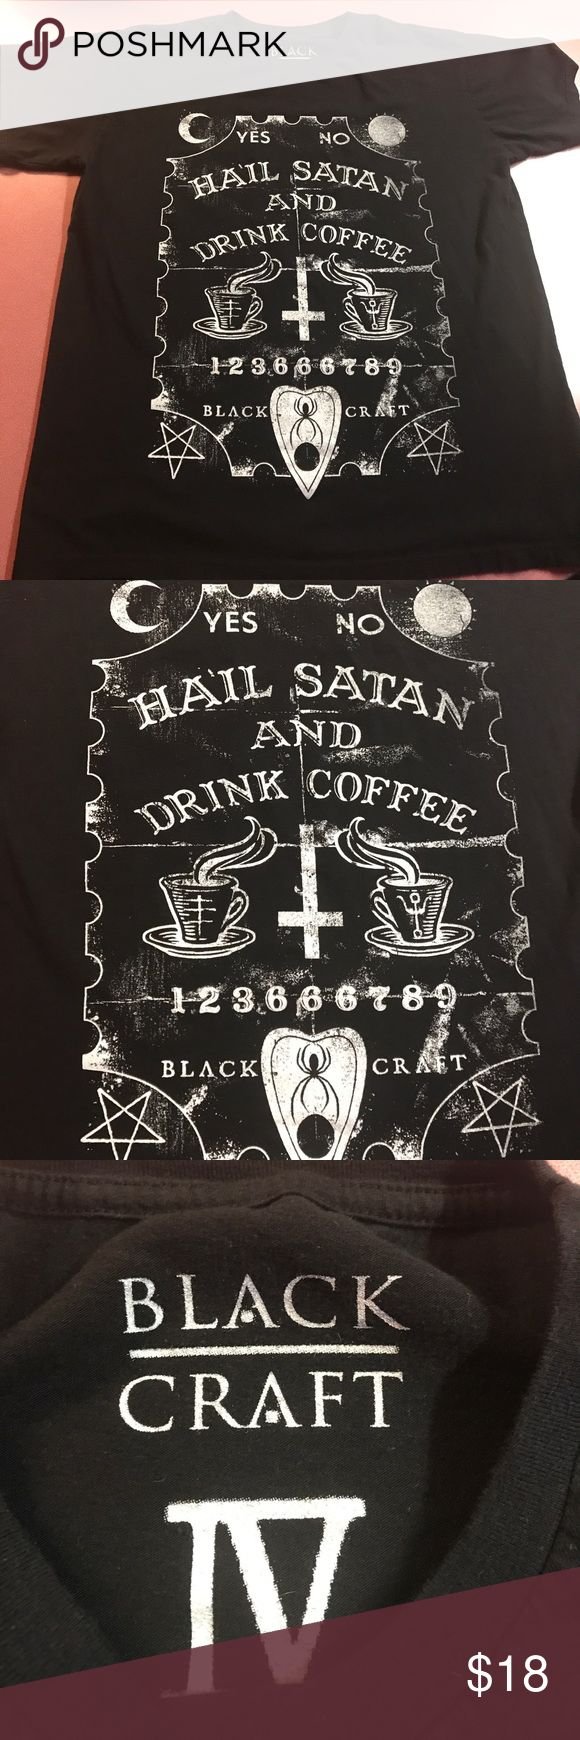 """Blackcraft """"Hail Satan and Drink Coffee"""" T-Shirt Hello! Thank you for viewing my listing. This is a T-shirt through the brand Blackcraft. It features a Ouija Board Print with the inscription """"Hail Satan and Drink Coffee"""". This is pre-owned, but seldom worn and looks to be in great condition. This is a Size XL in Men's. If you have any questions, please do not hesitate to ask. Thank you! Blackcraft Shirts Tees - Short Sleeve"""